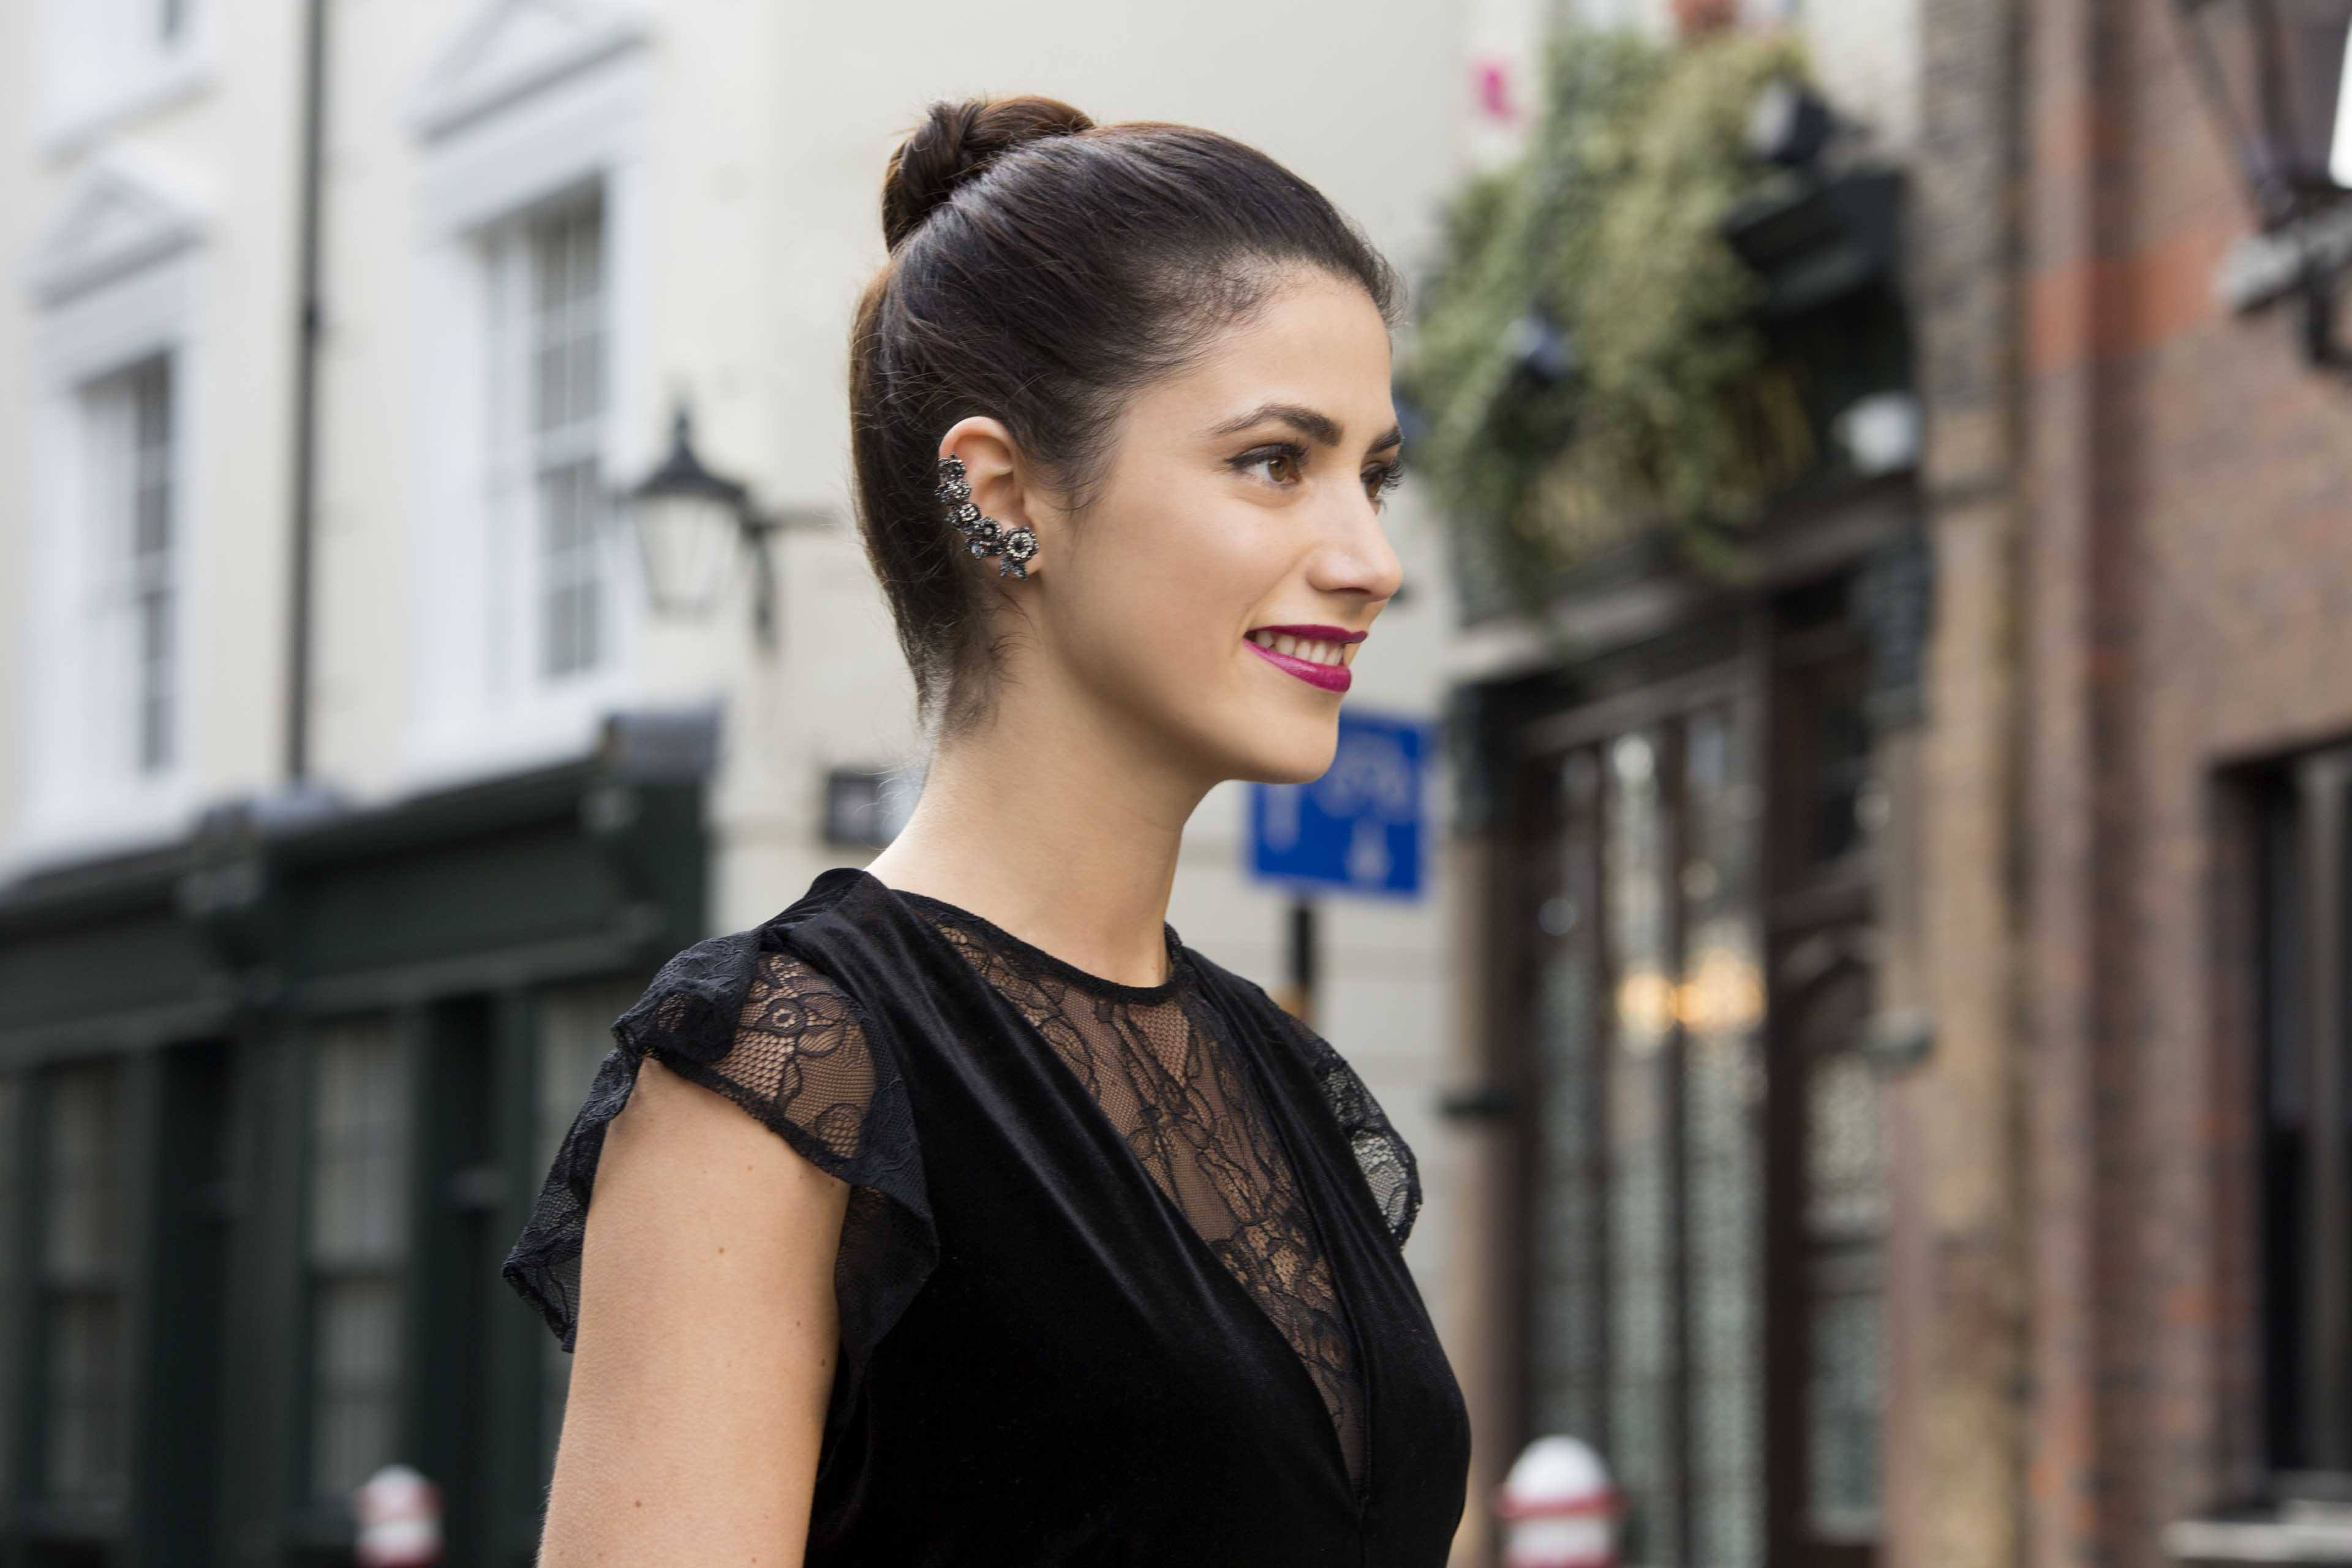 Christmas hairstyles: Woman with brown straight hair styled in a sleek top knot bun wearing a black lace top and red lipstick.